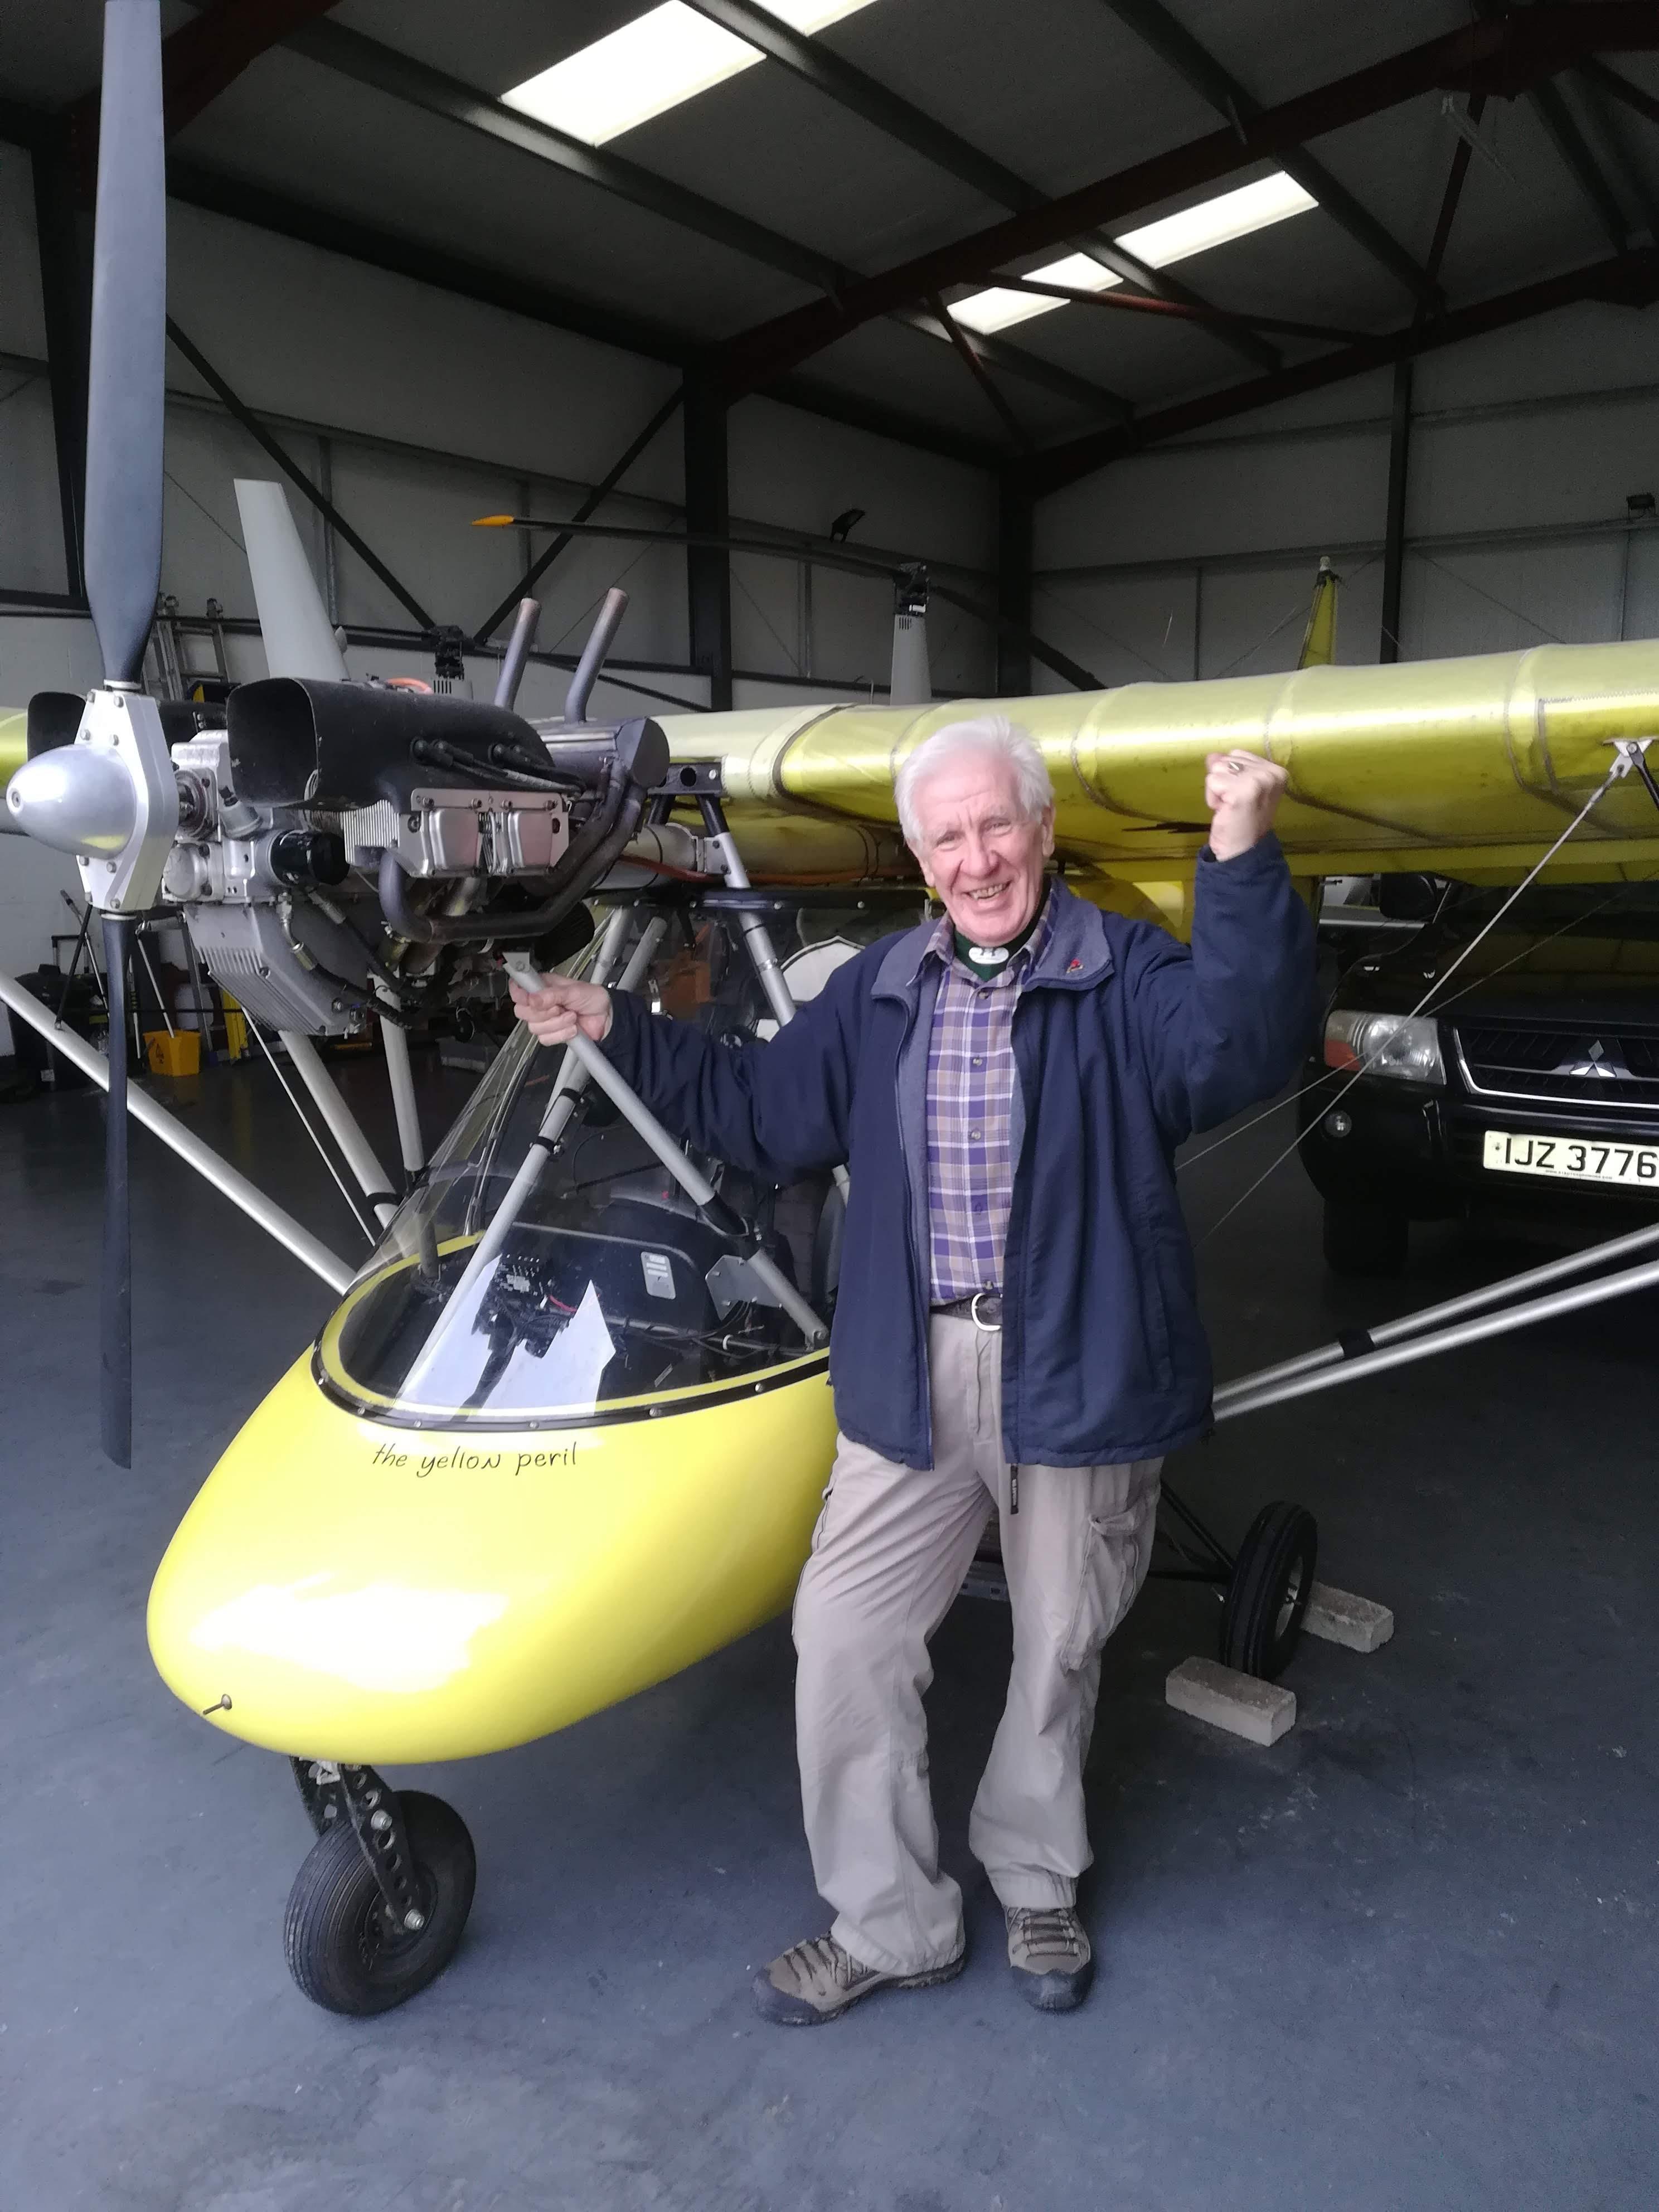 Joe McCarrison gets his Pilot's license and buys a plane